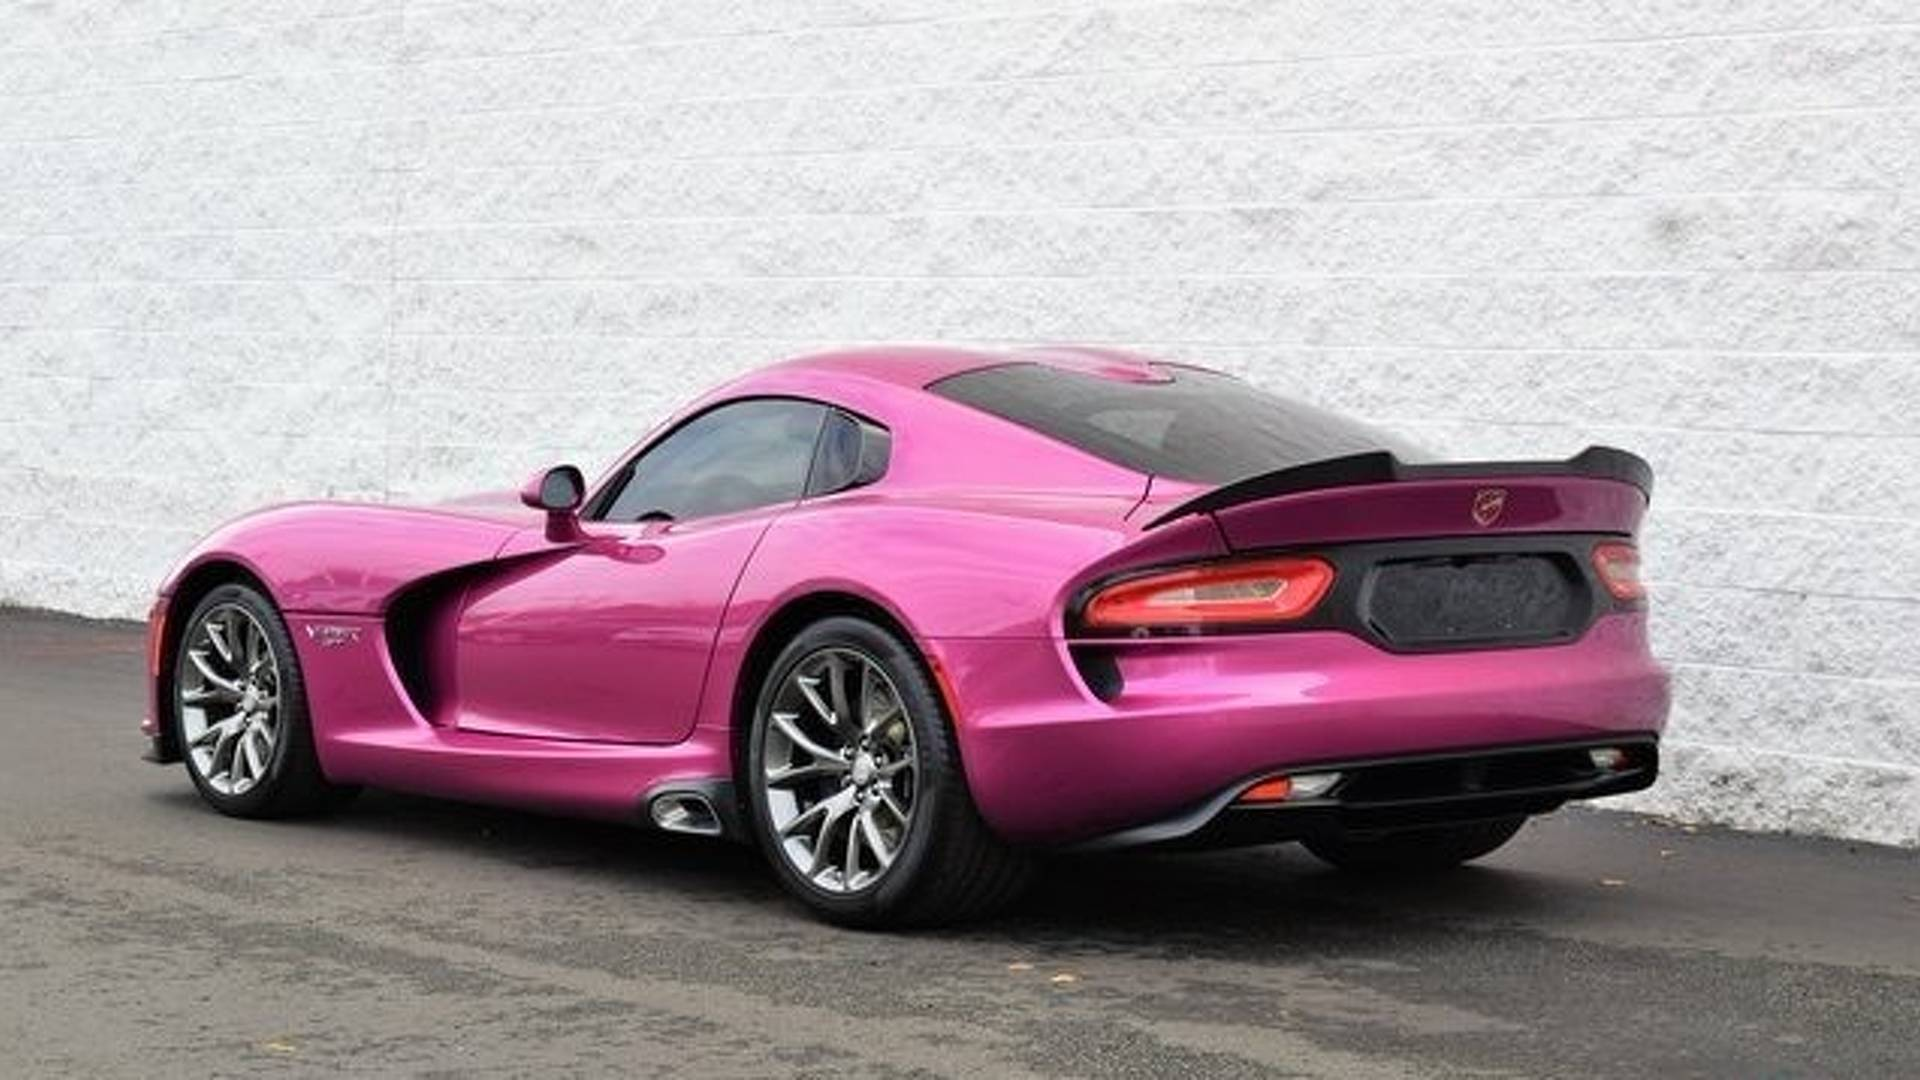 2017_Dodge_Viper_Metallic_Pink_0017